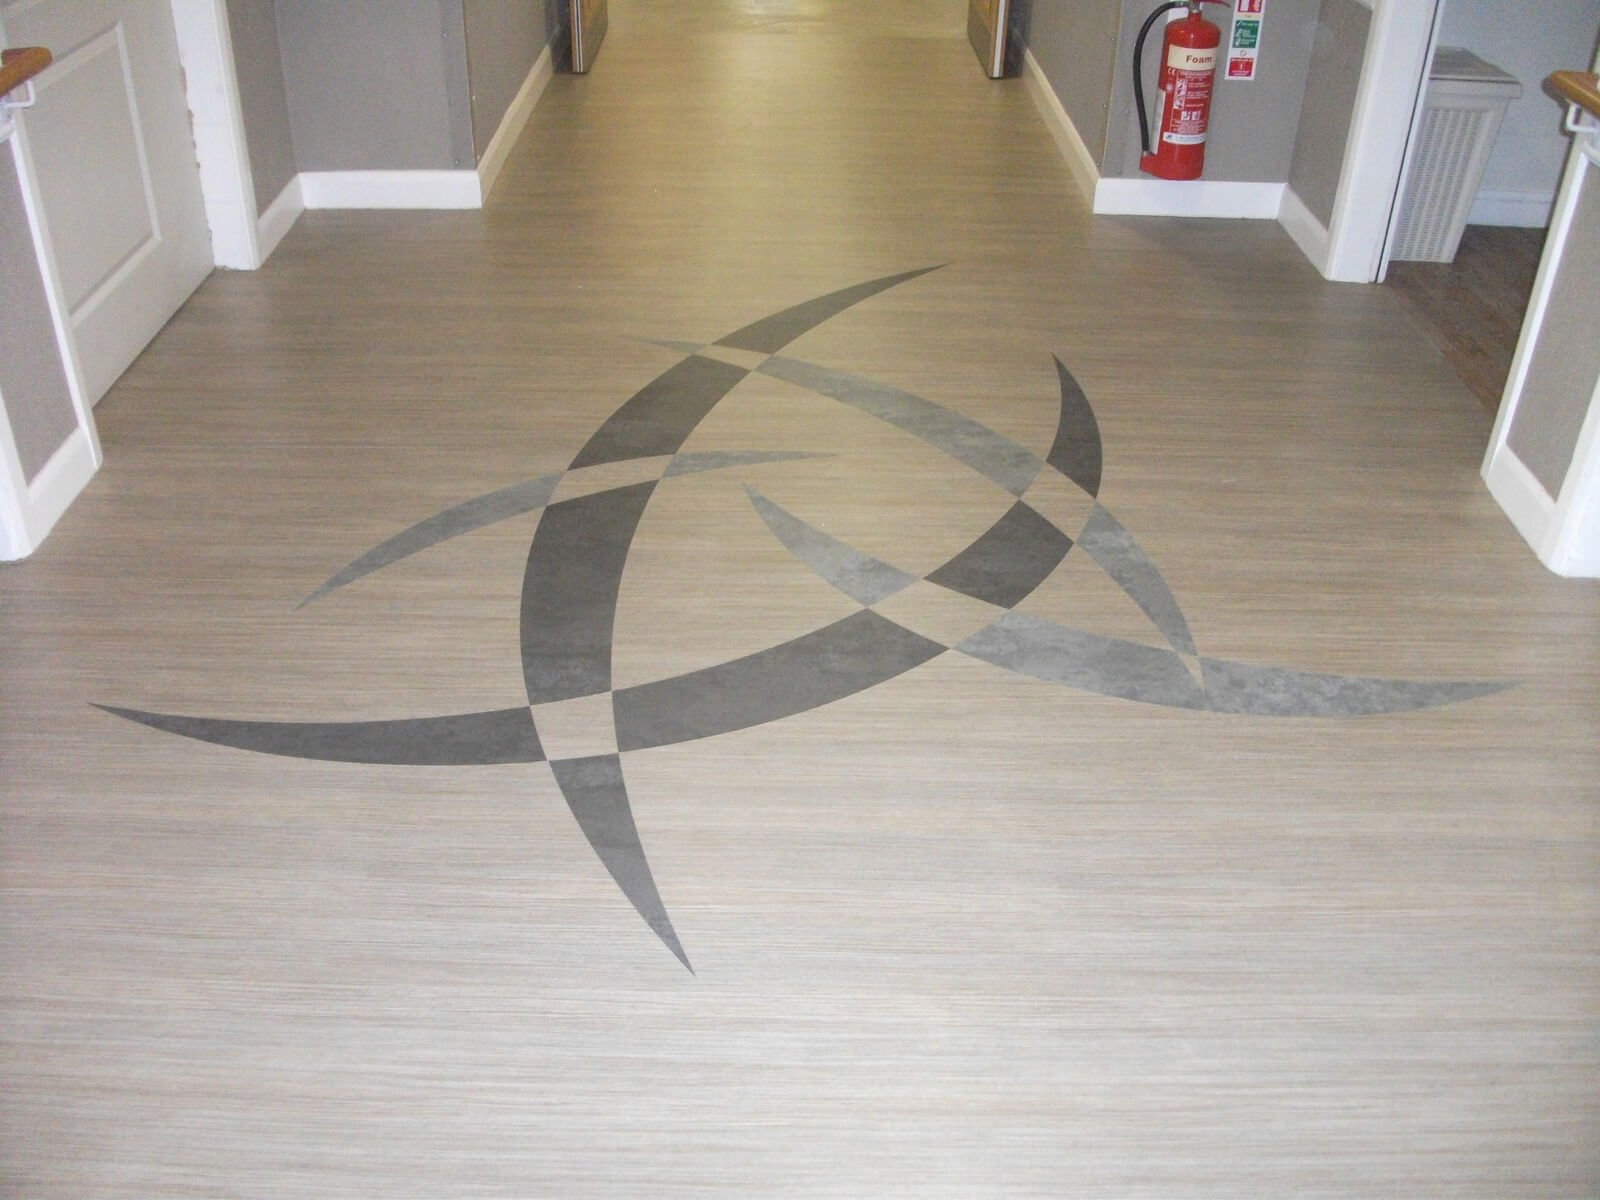 Expert floor fitters from Northern Floorcraft